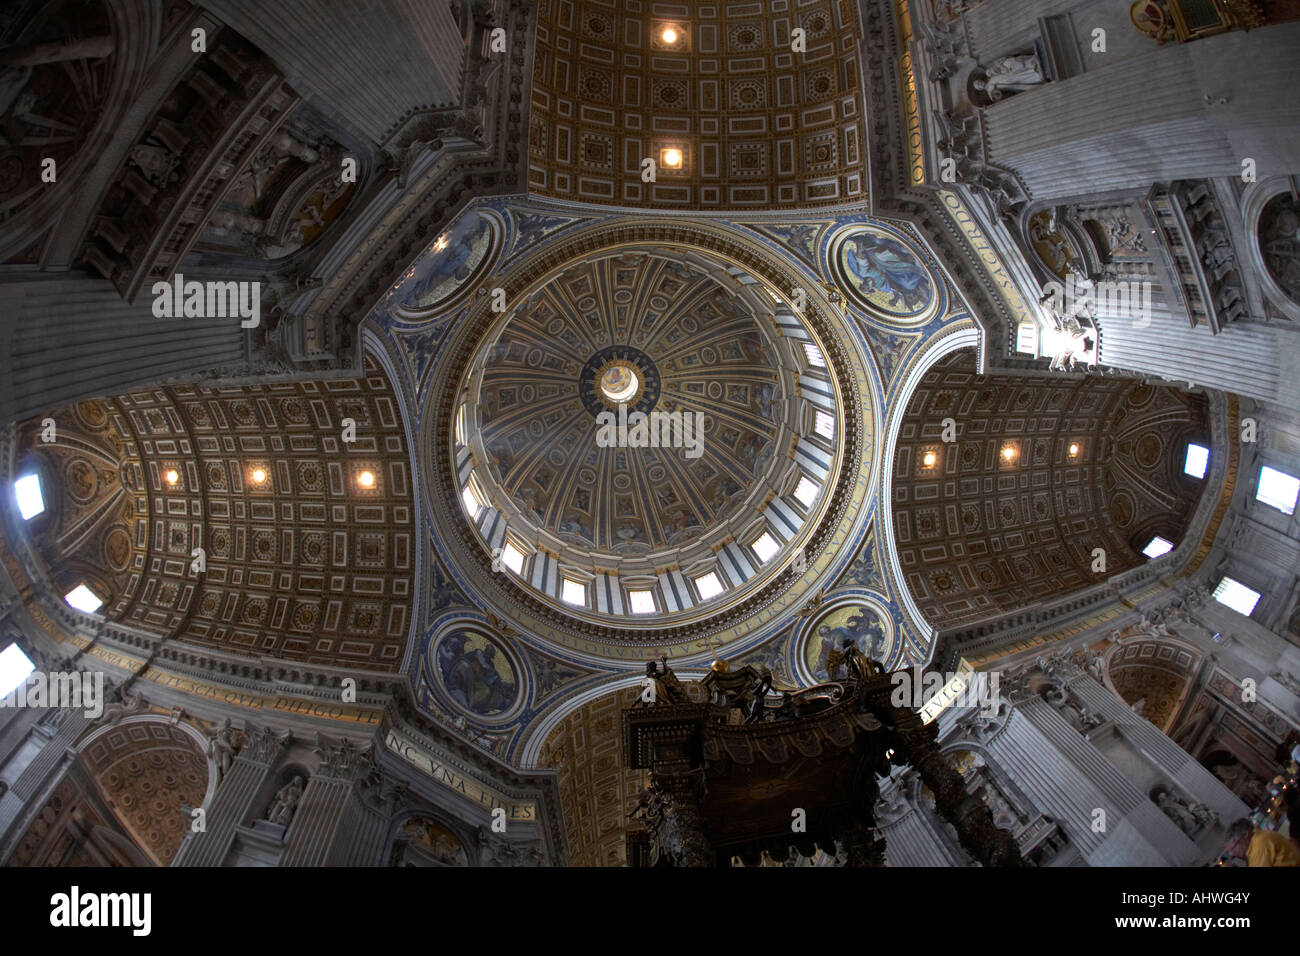 Looking up at the inside of the dome and ceiling of St Peters Cathedral Vatican City Rome Lazio Italy - Stock Image